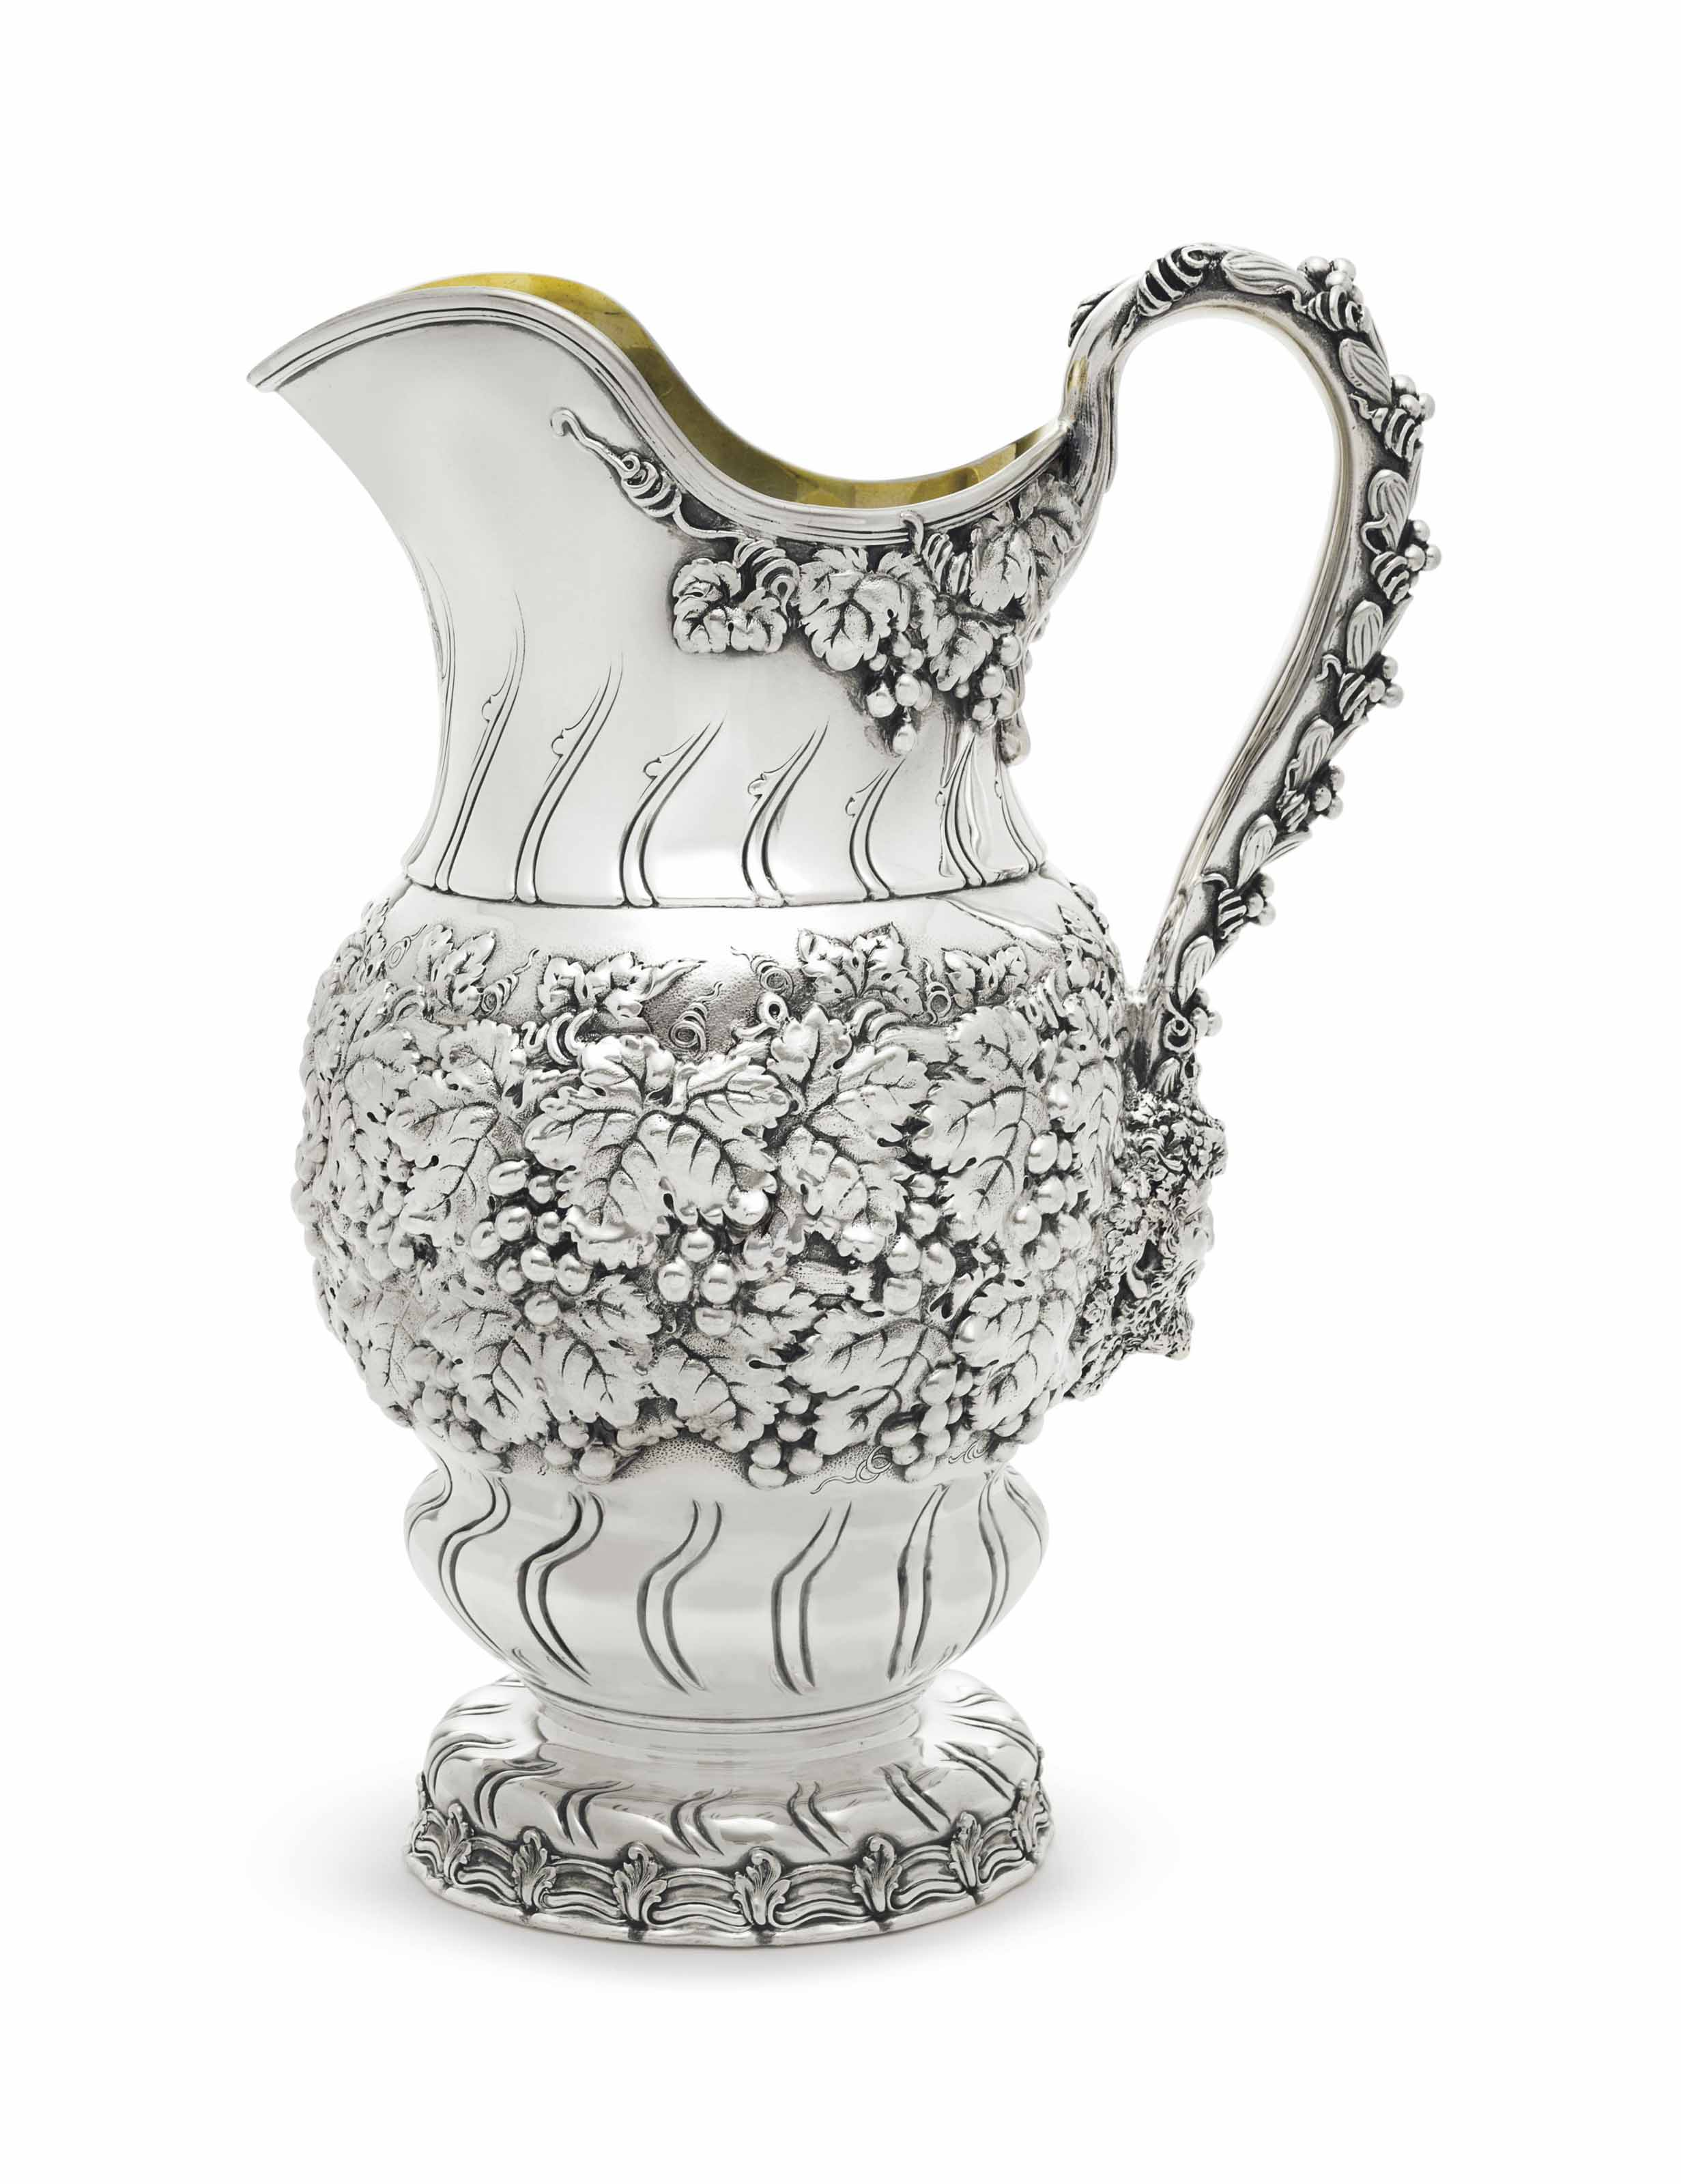 A LARGE SILVER WATER PITCHER